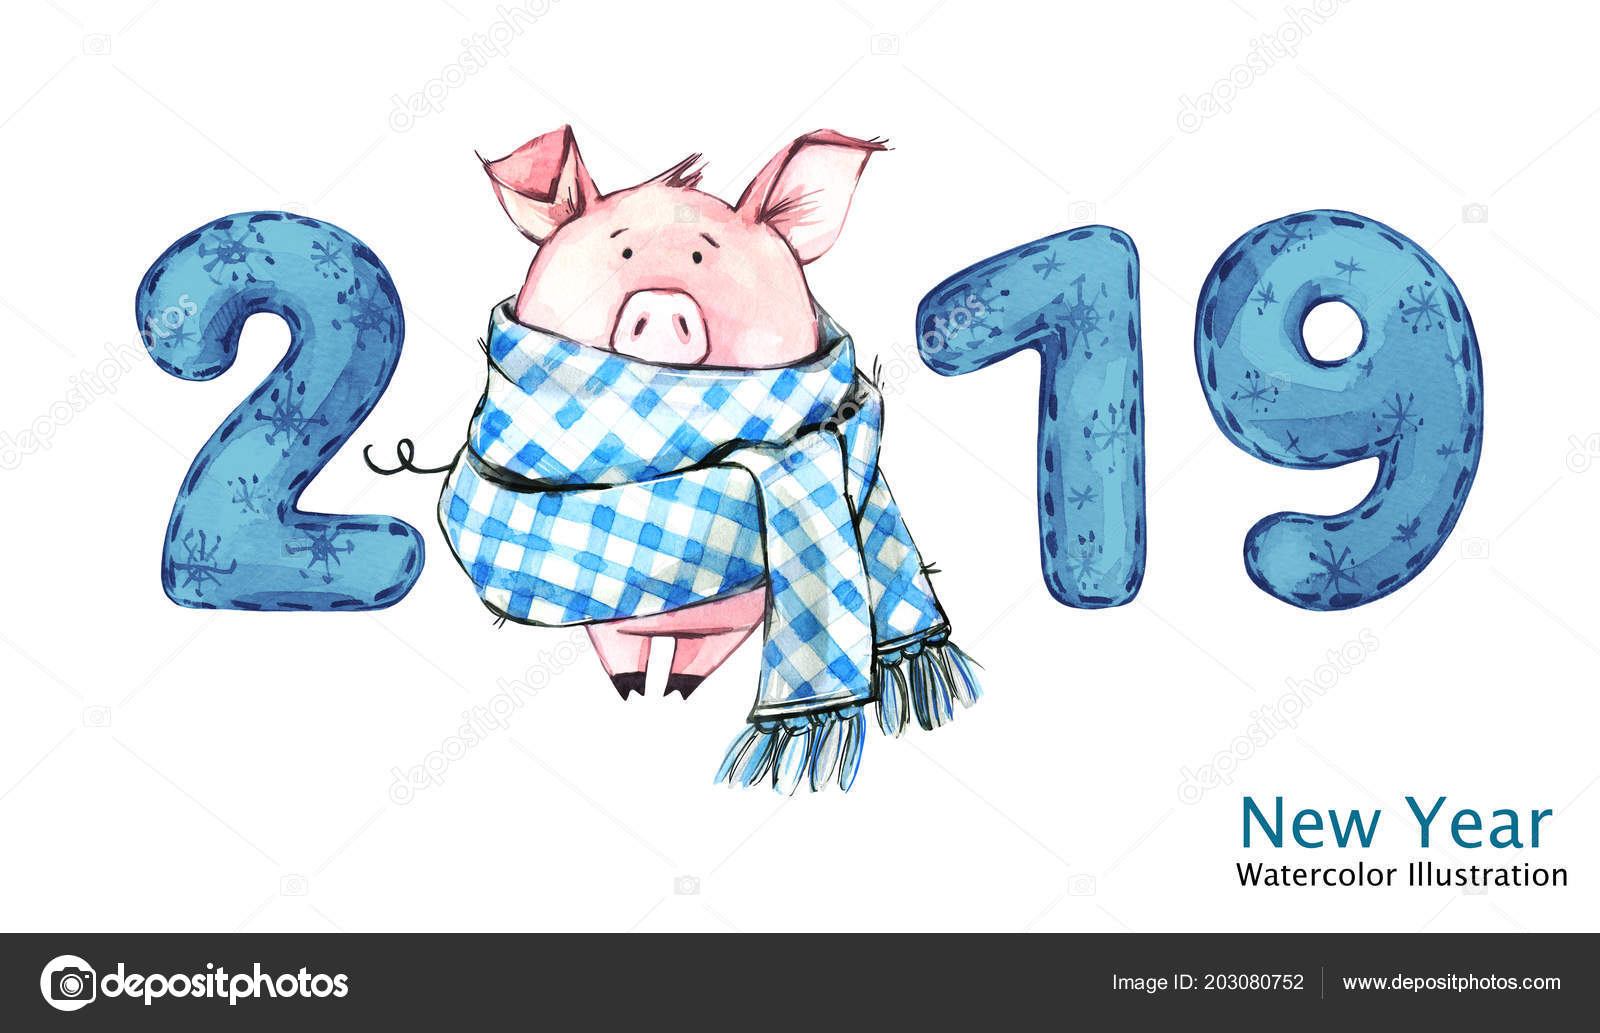 2019 happy new year banner cute pig in winter scarf with numbers greeting watercolor illustration symbol of winter holidays zodiac sign